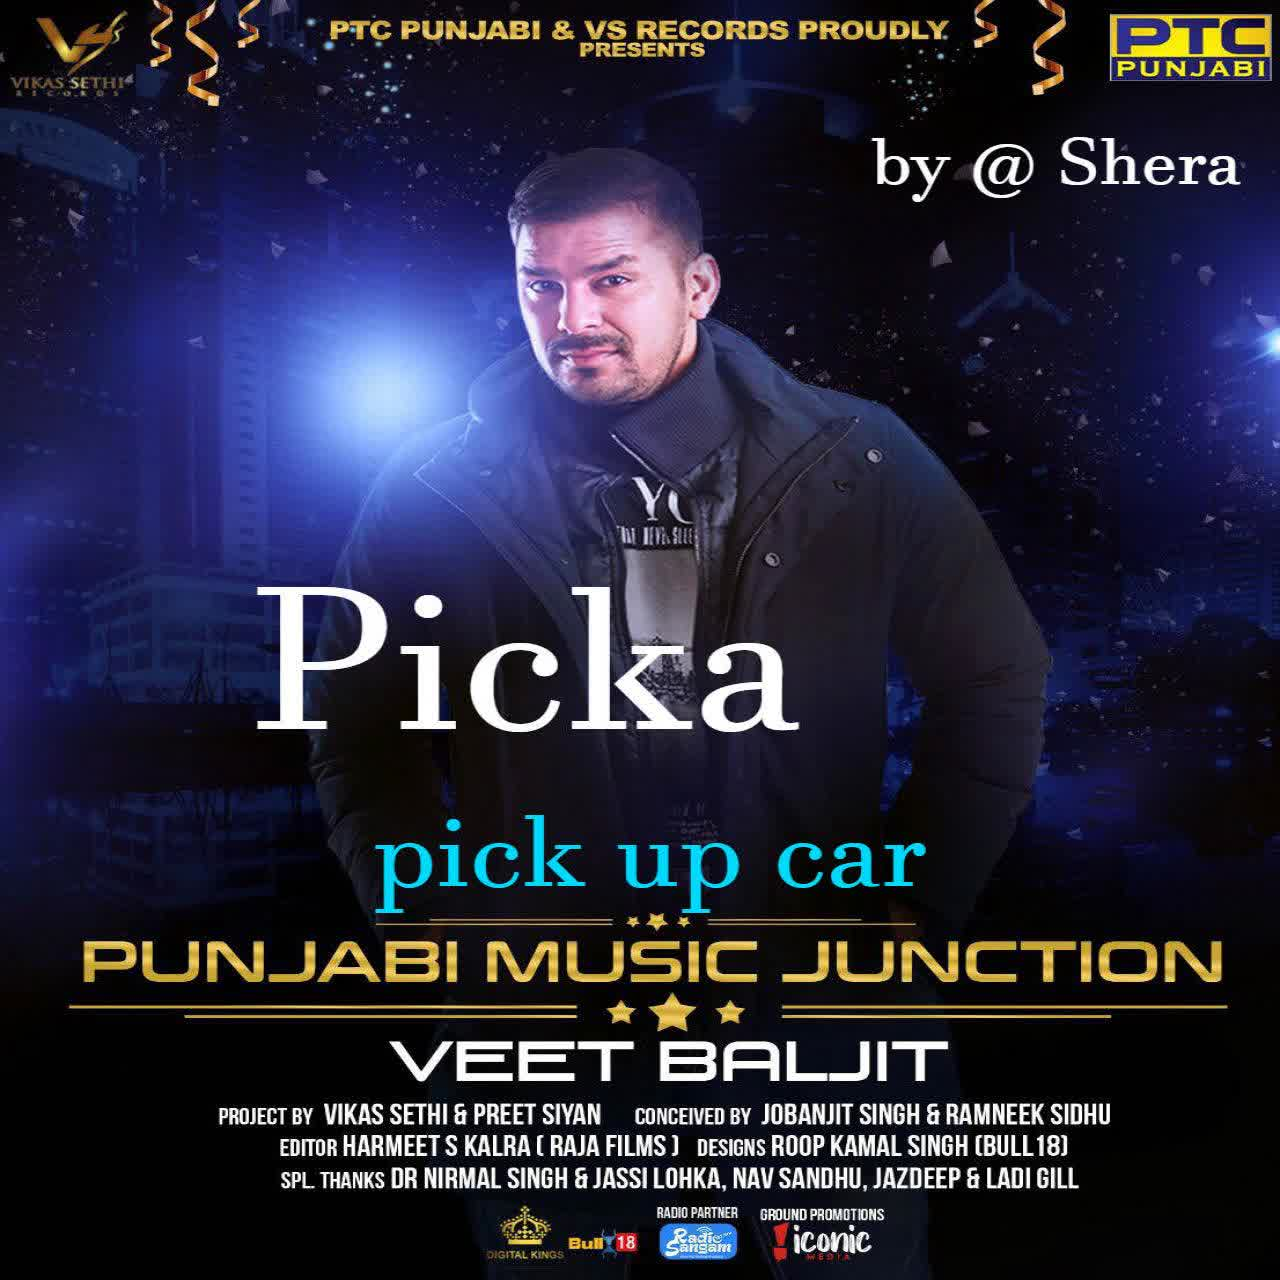 Picka (Pick Up Car) Veet Baljit